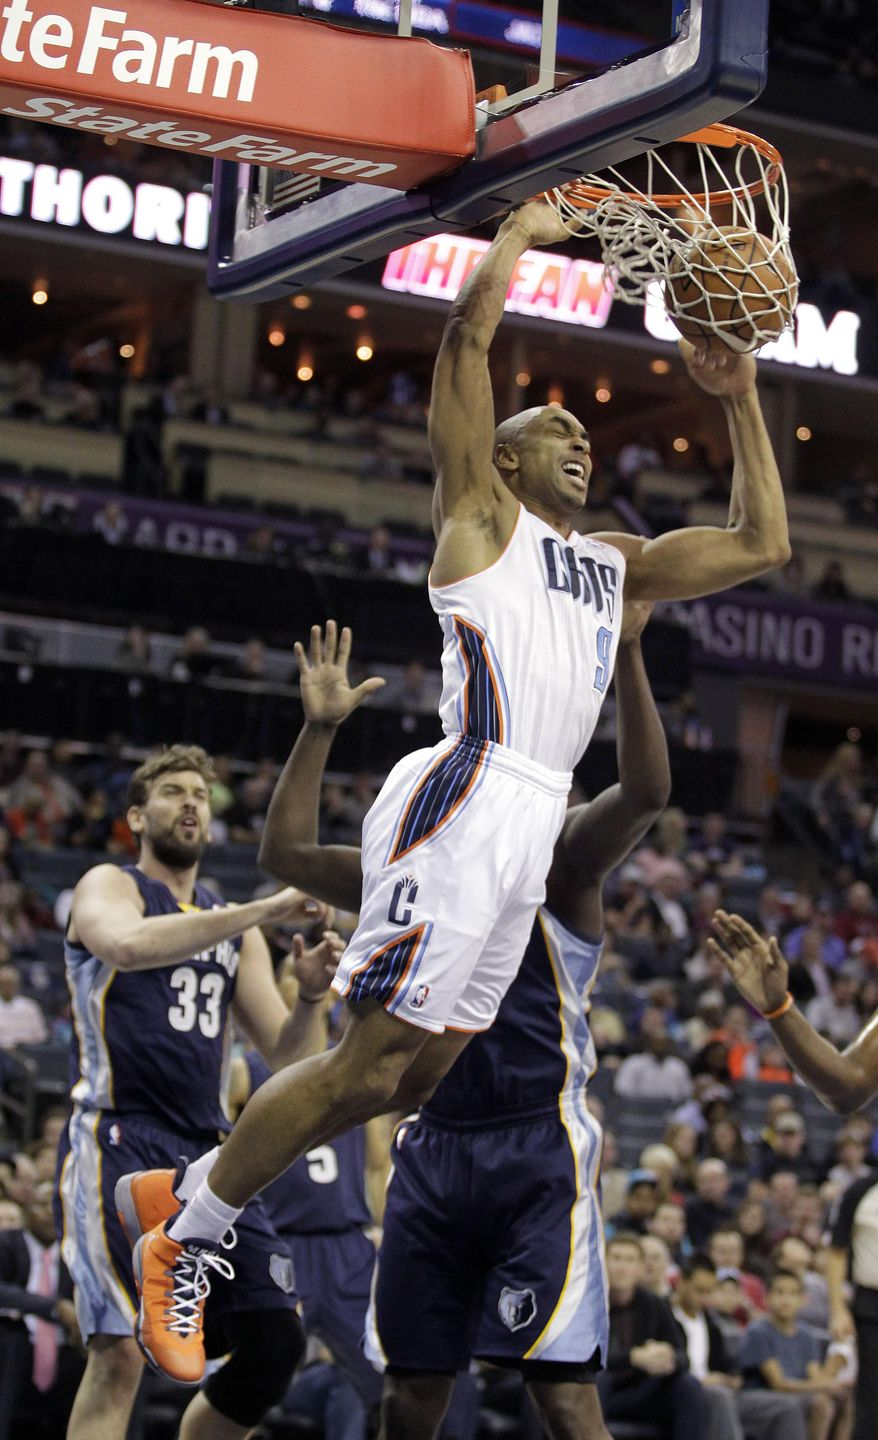 The Charlotte Bobcats' Gerald Henderson (9) dunks over the Memphis Grizzlies' Marc Gasol (33) and Zach Randolph during the first half of an NBA basketball game in Charlotte, N.C., Saturday, Feb. 22, 2014. (AP Photo/Bob Leverone)